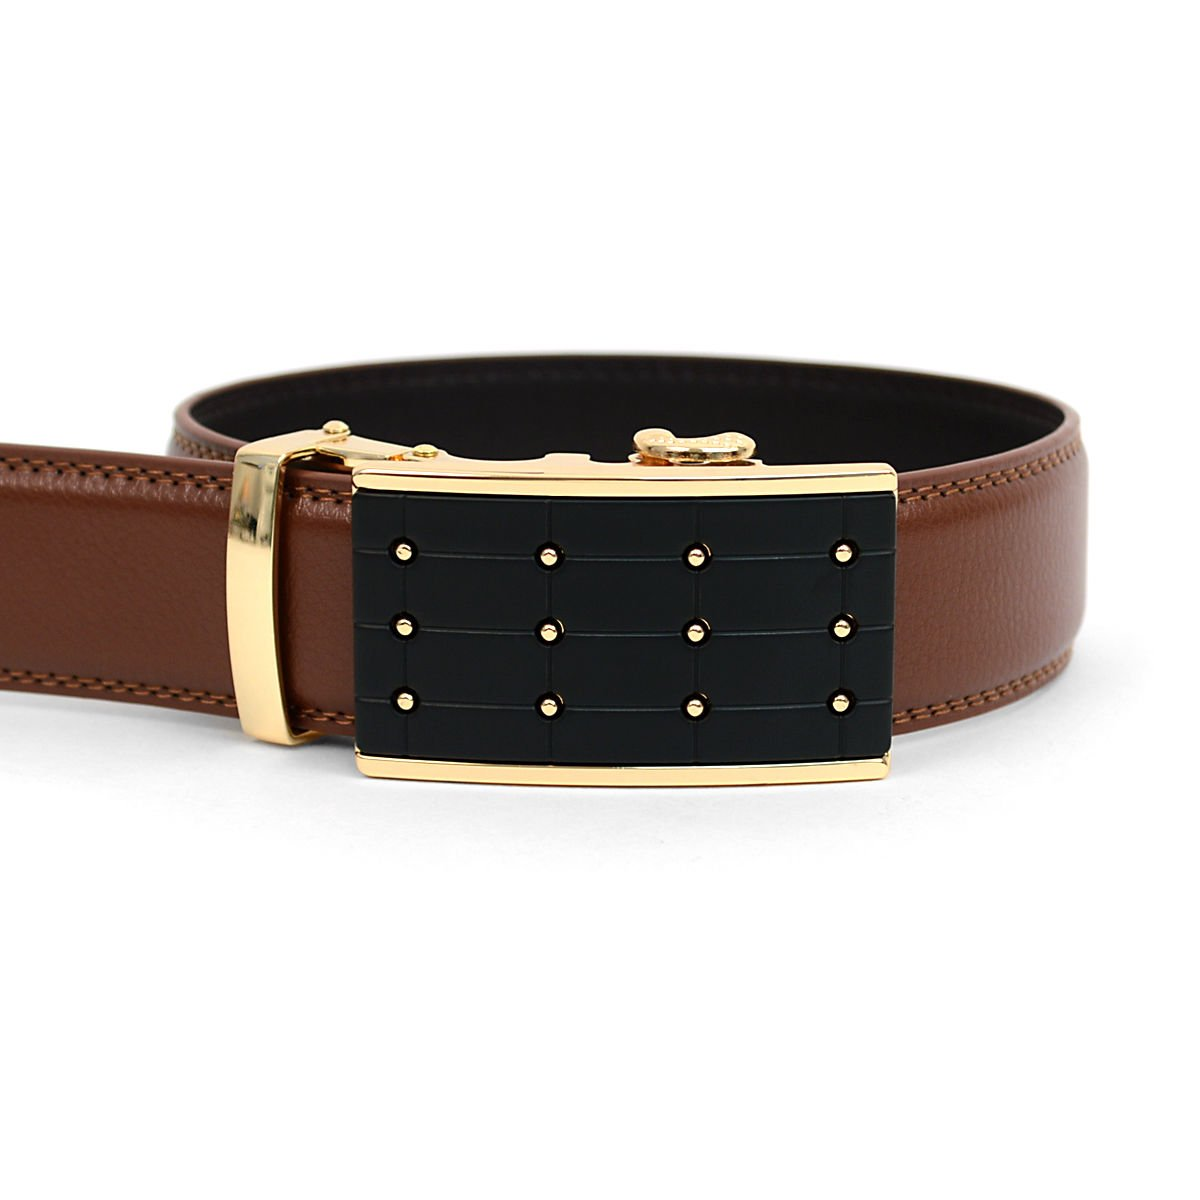 Men/'s Designer Genuine Leather Ratchet Dress Belt with Auto Lock Buckle Dotted